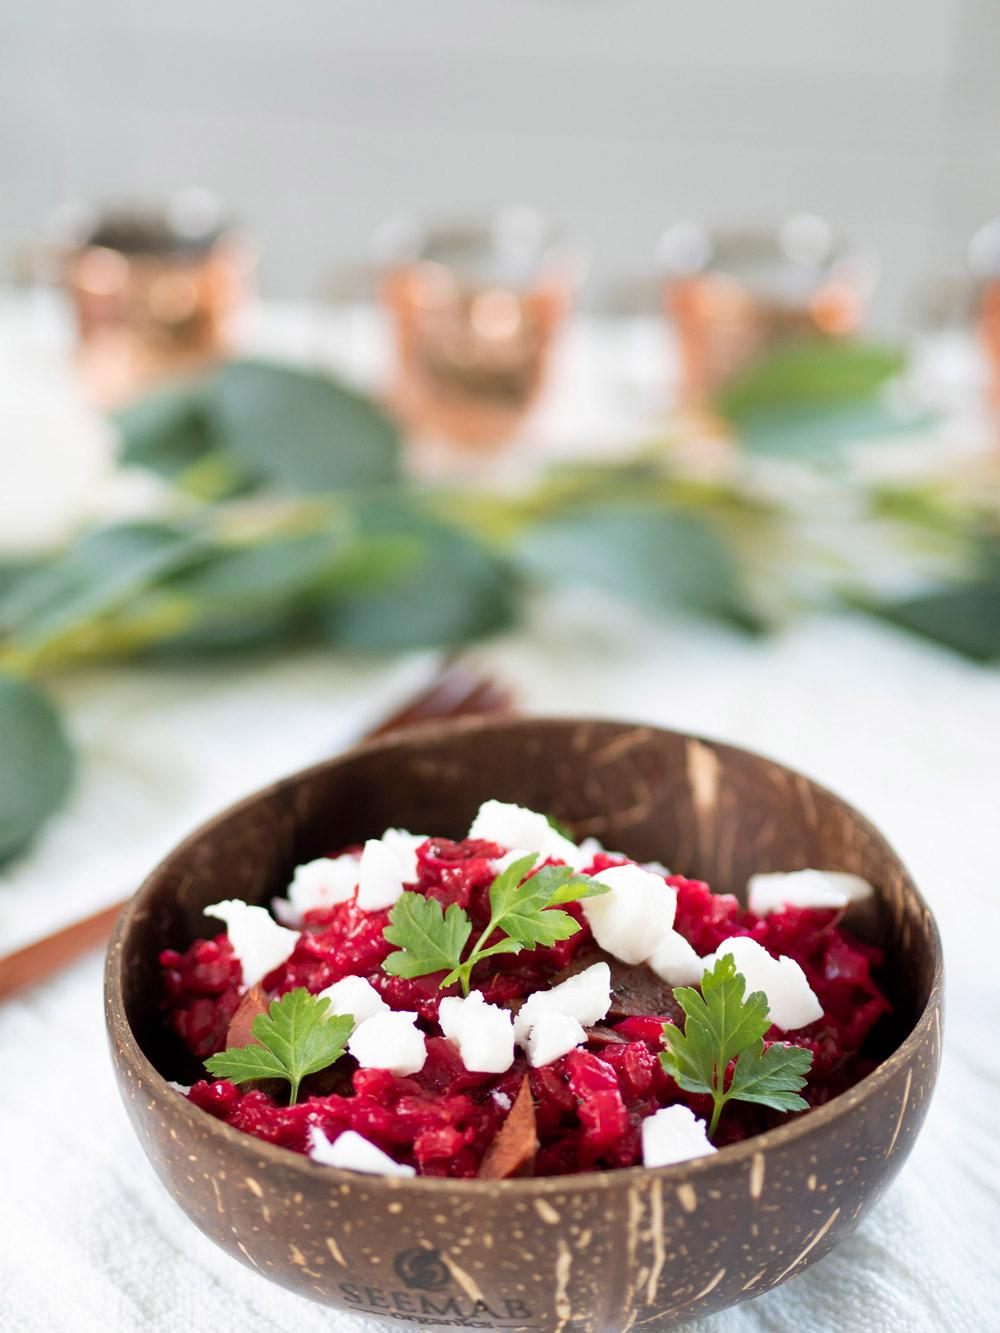 Simple but delicious quick beetroot risotto (vegan) | A coconut bowl filled with vegan risotto which is topped with chunks of vegan feta cheese and garnished with sprigs of parsley leaves. Blurred in the background is a decorative branch of eucalyptus leaves and a row of copper mugs.